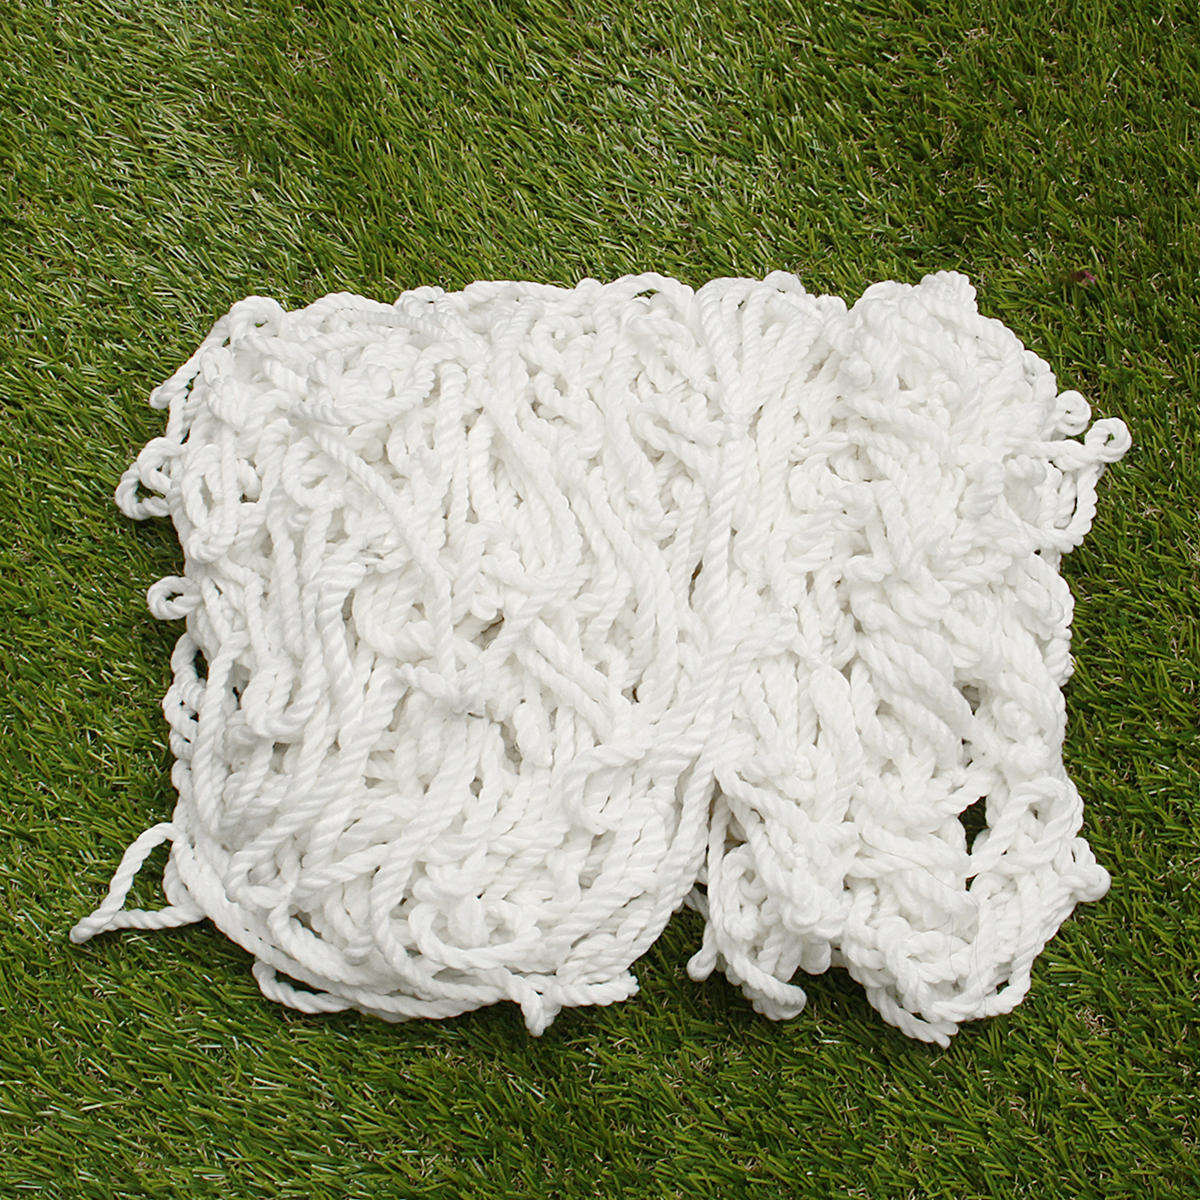 Football Soccer Goal Post Net Training Match Replace Outdoor Full Size Adult Kid - 8